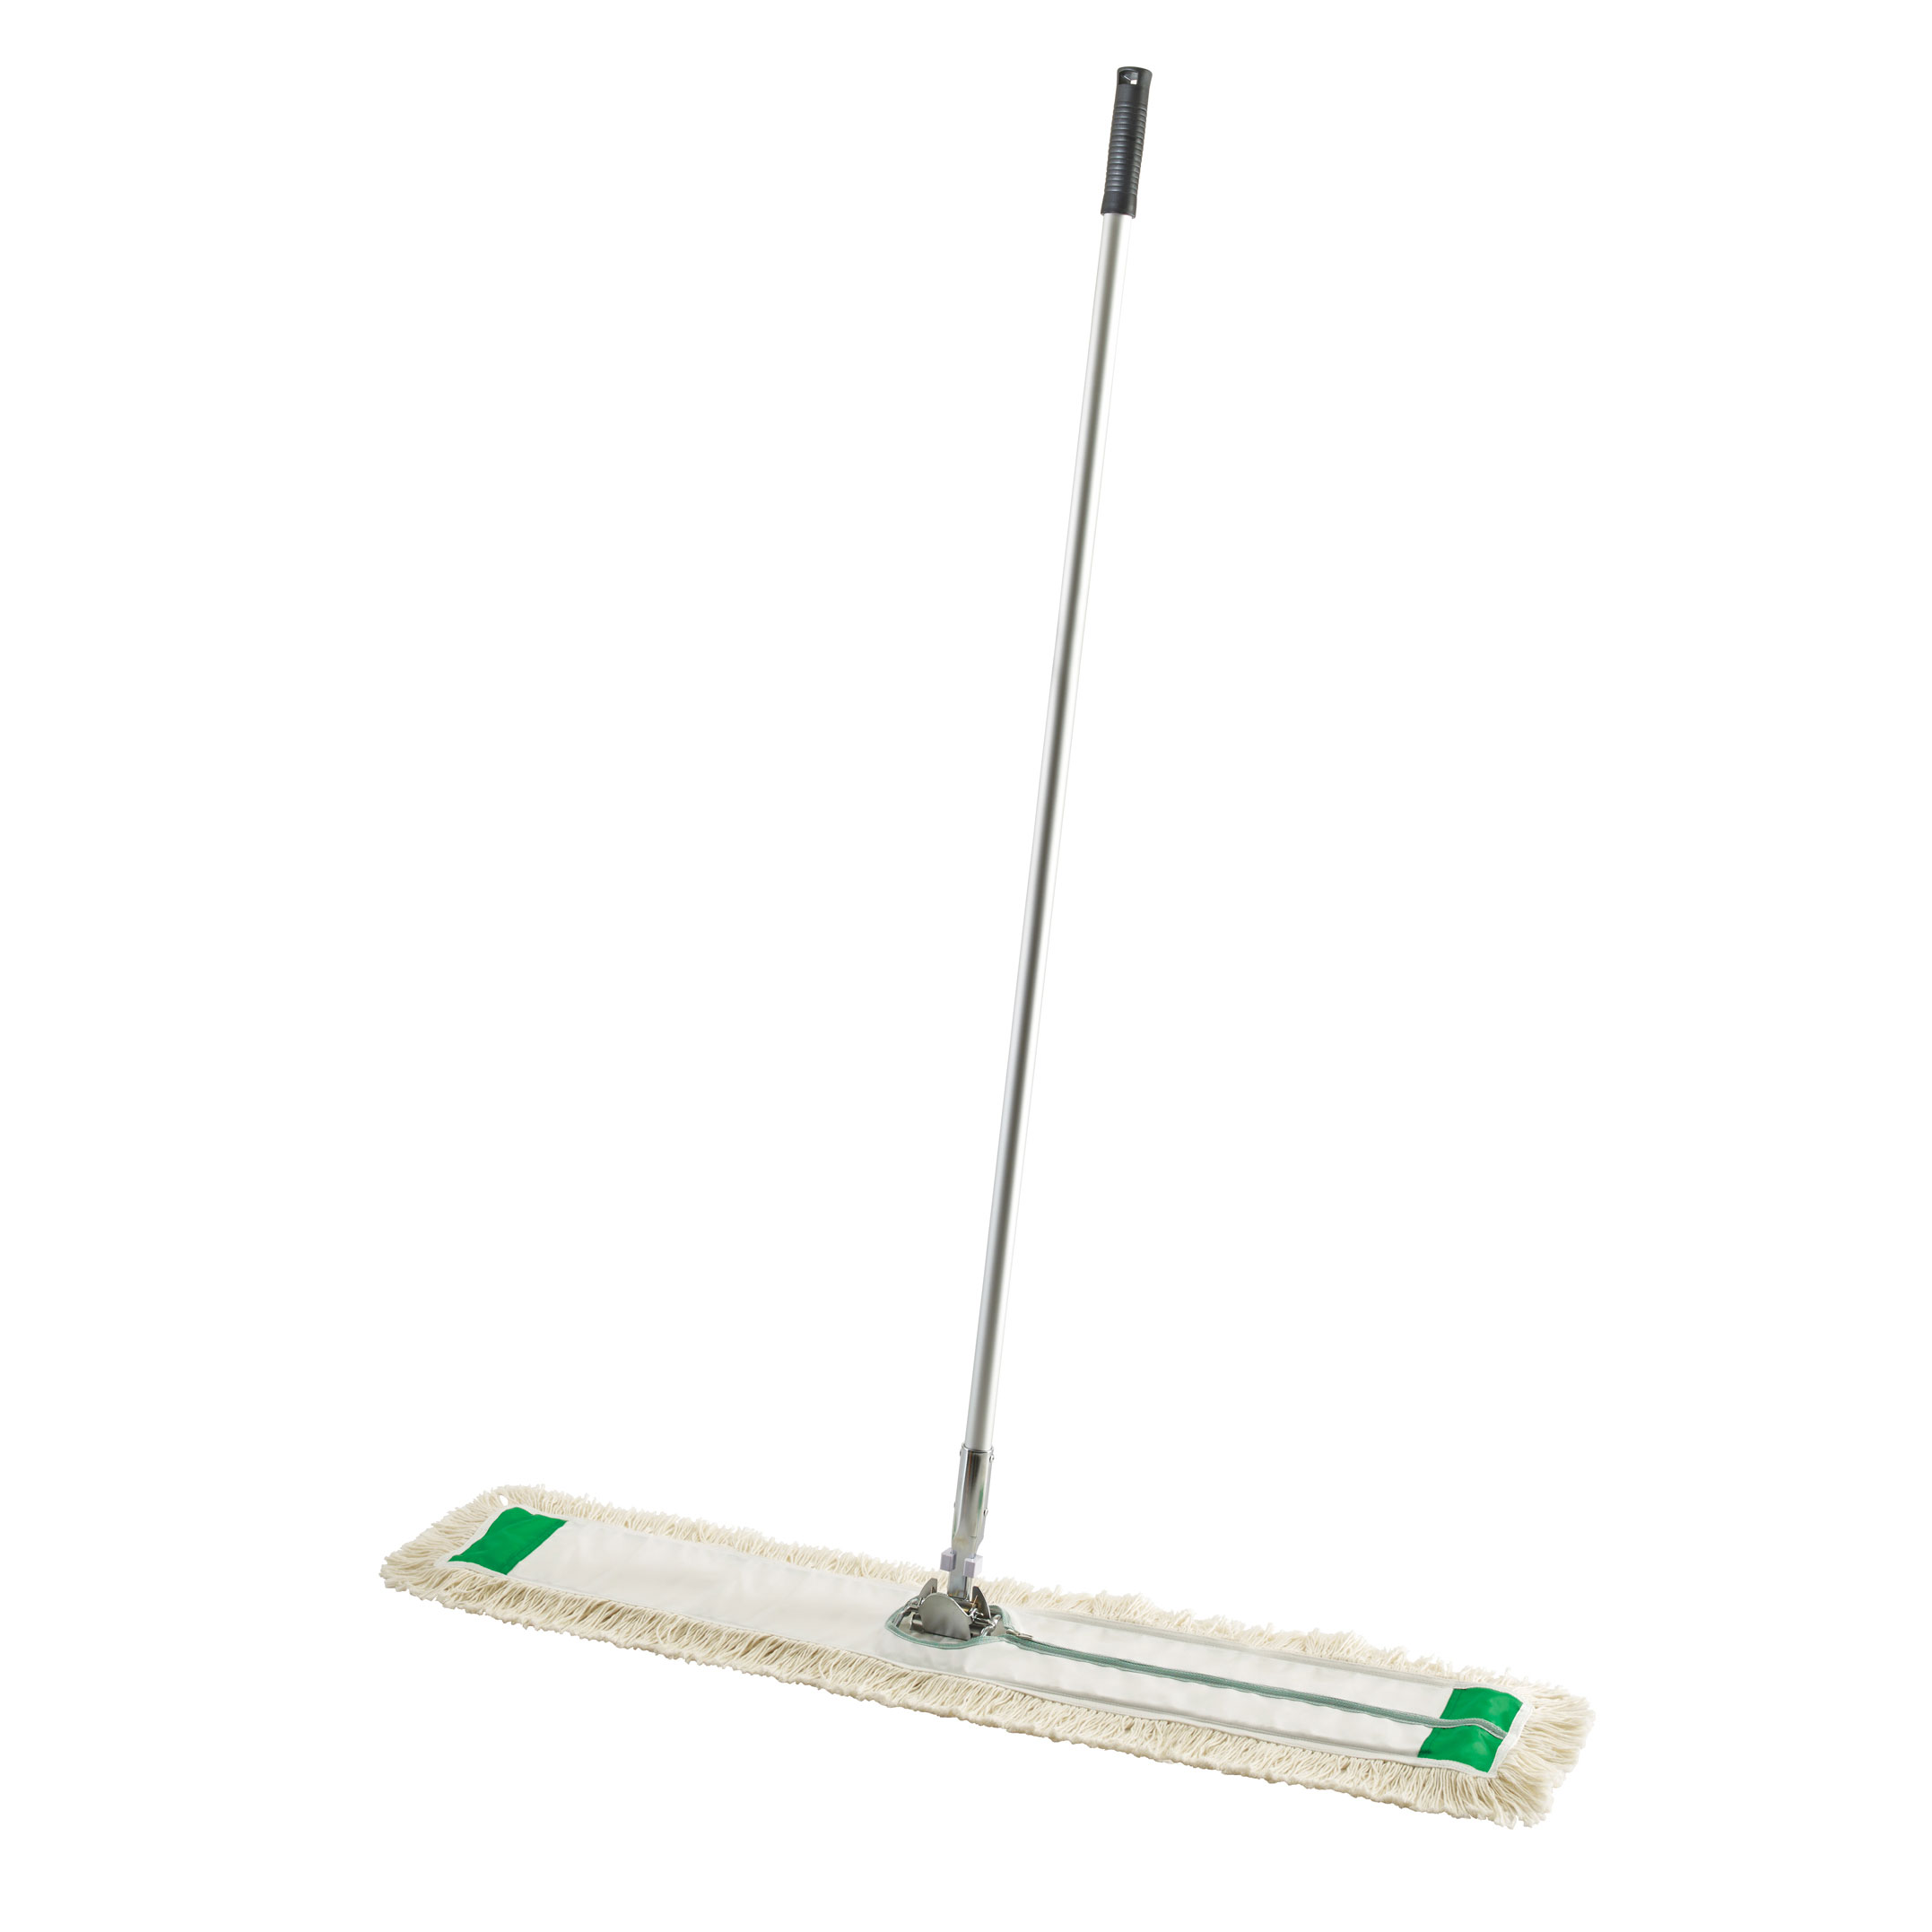 Winco DM-36 dust mop